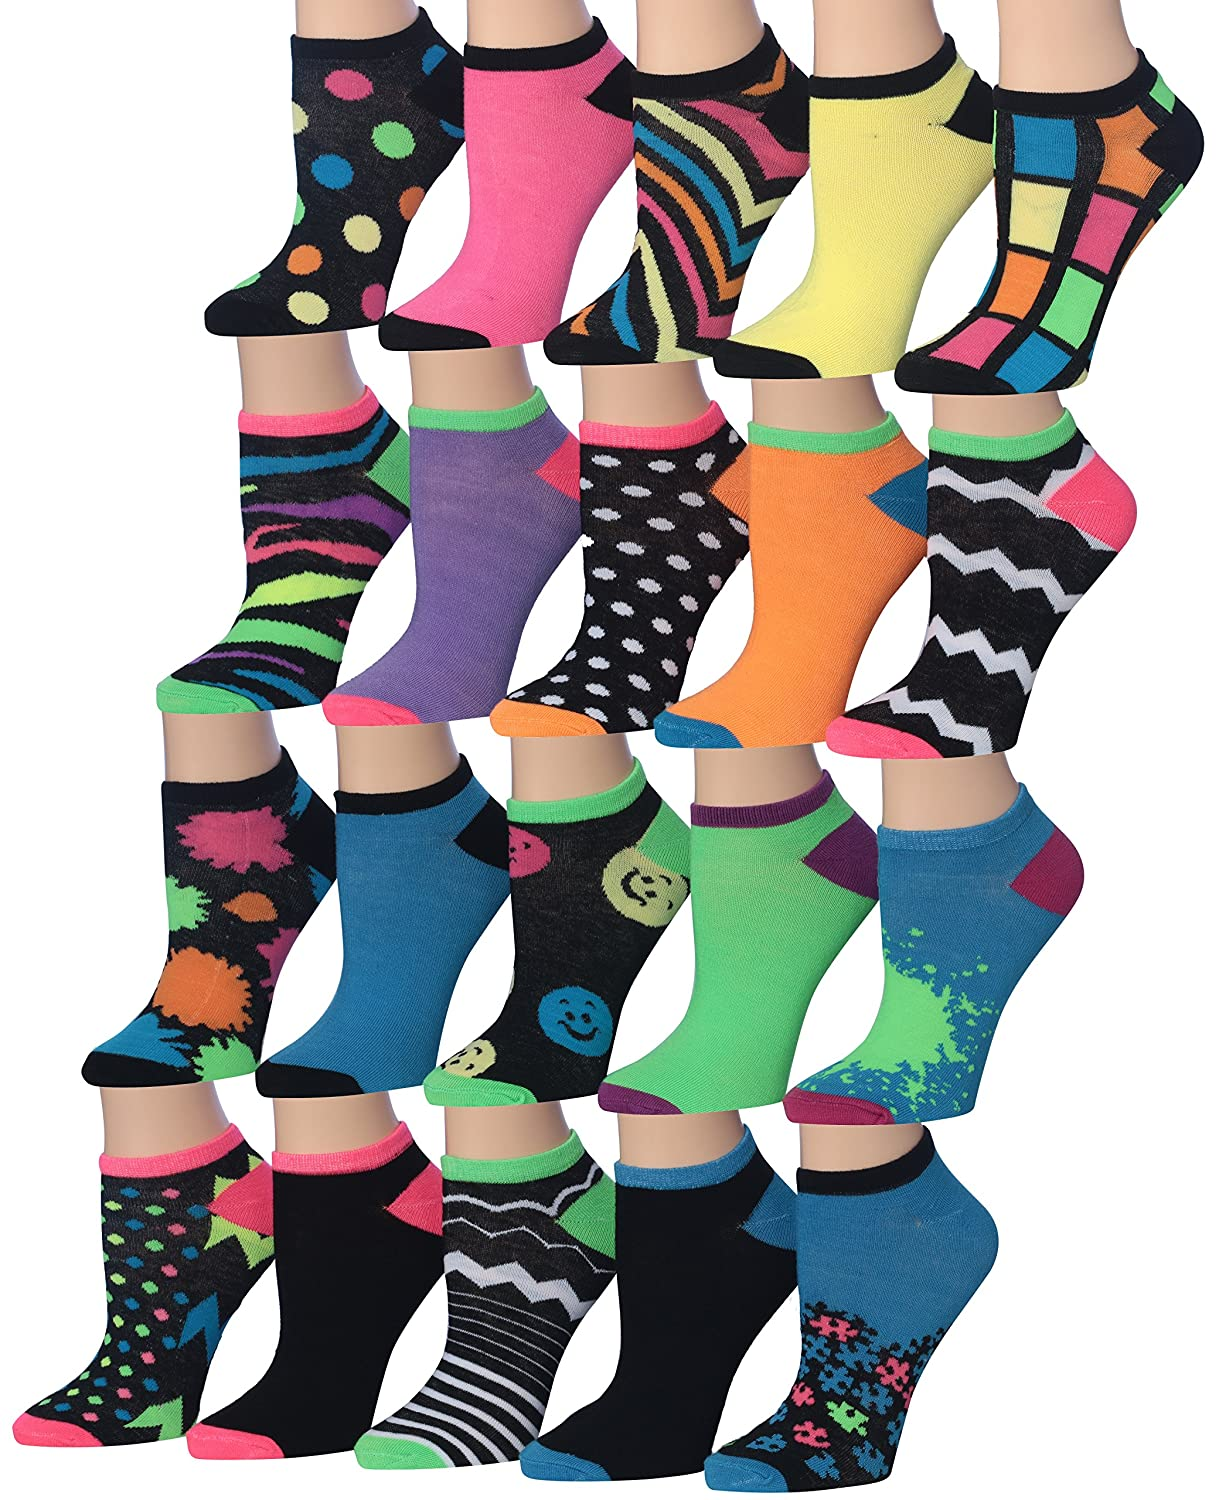 Tipi Toe Women's 20 Pairs Colorful Patterned Low Cut/No Show Socks WL07-AB